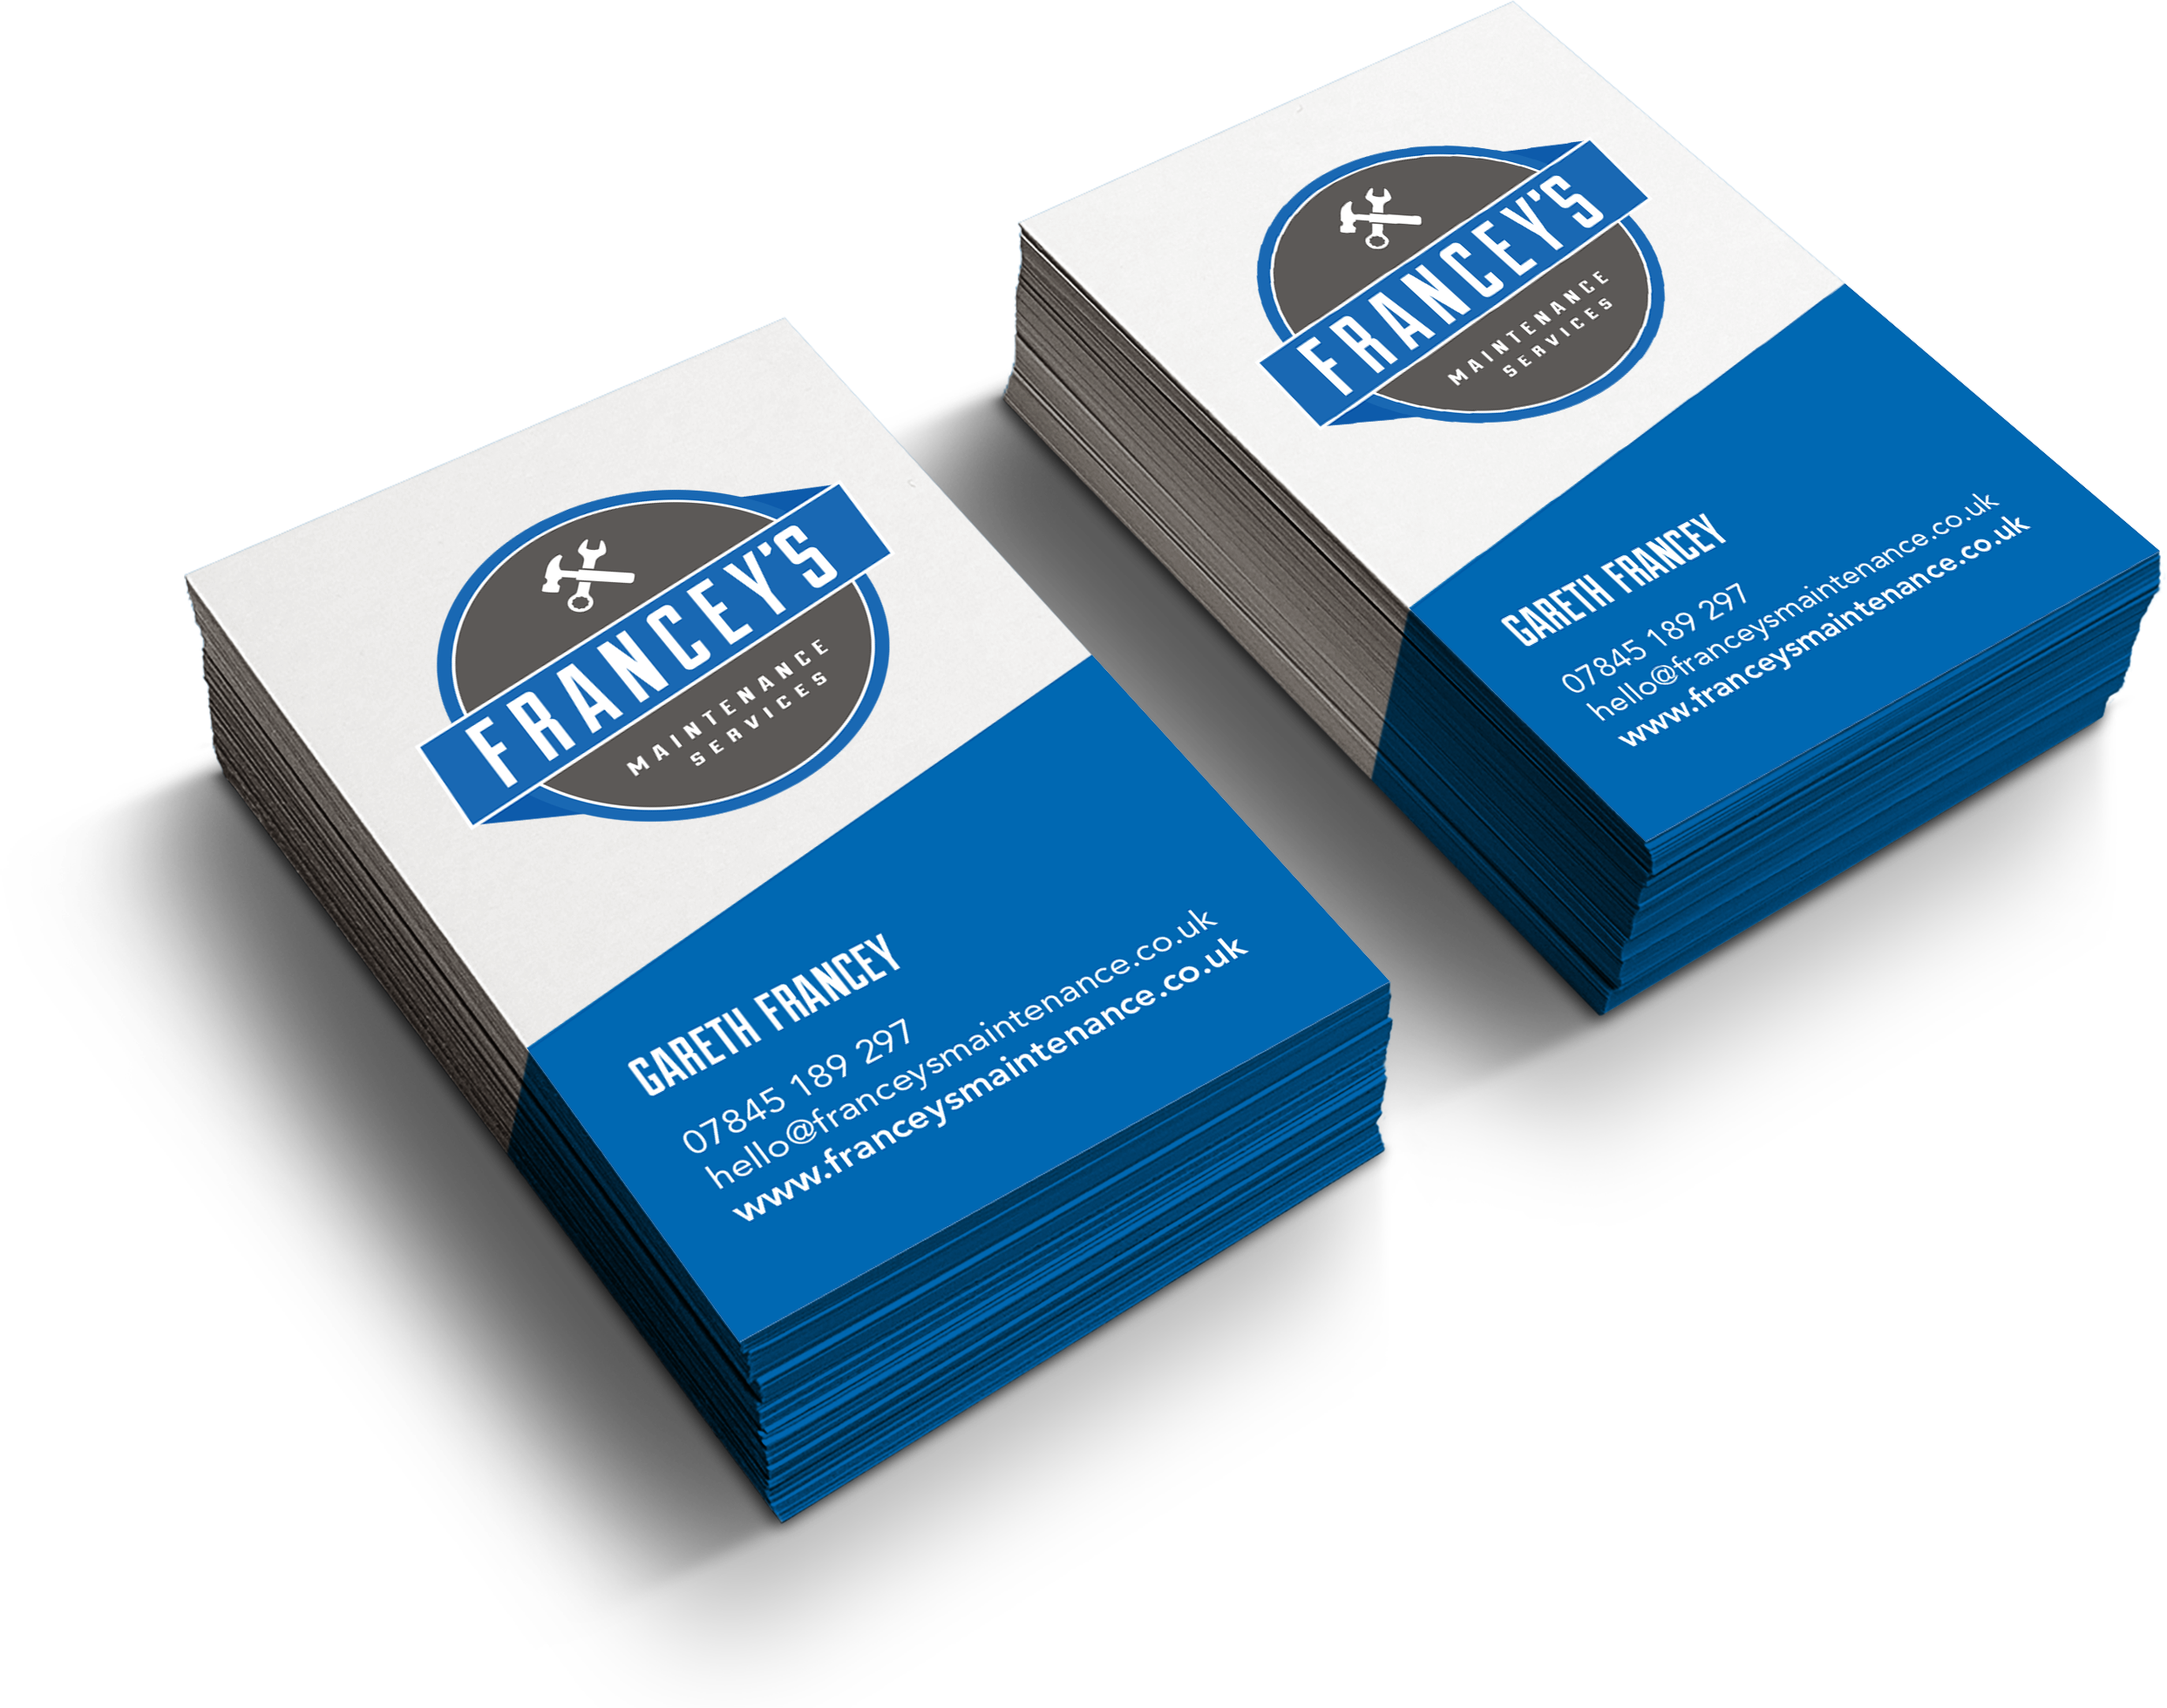 Stack of blue and white business cards with Francey's Maintenance logo and contact details